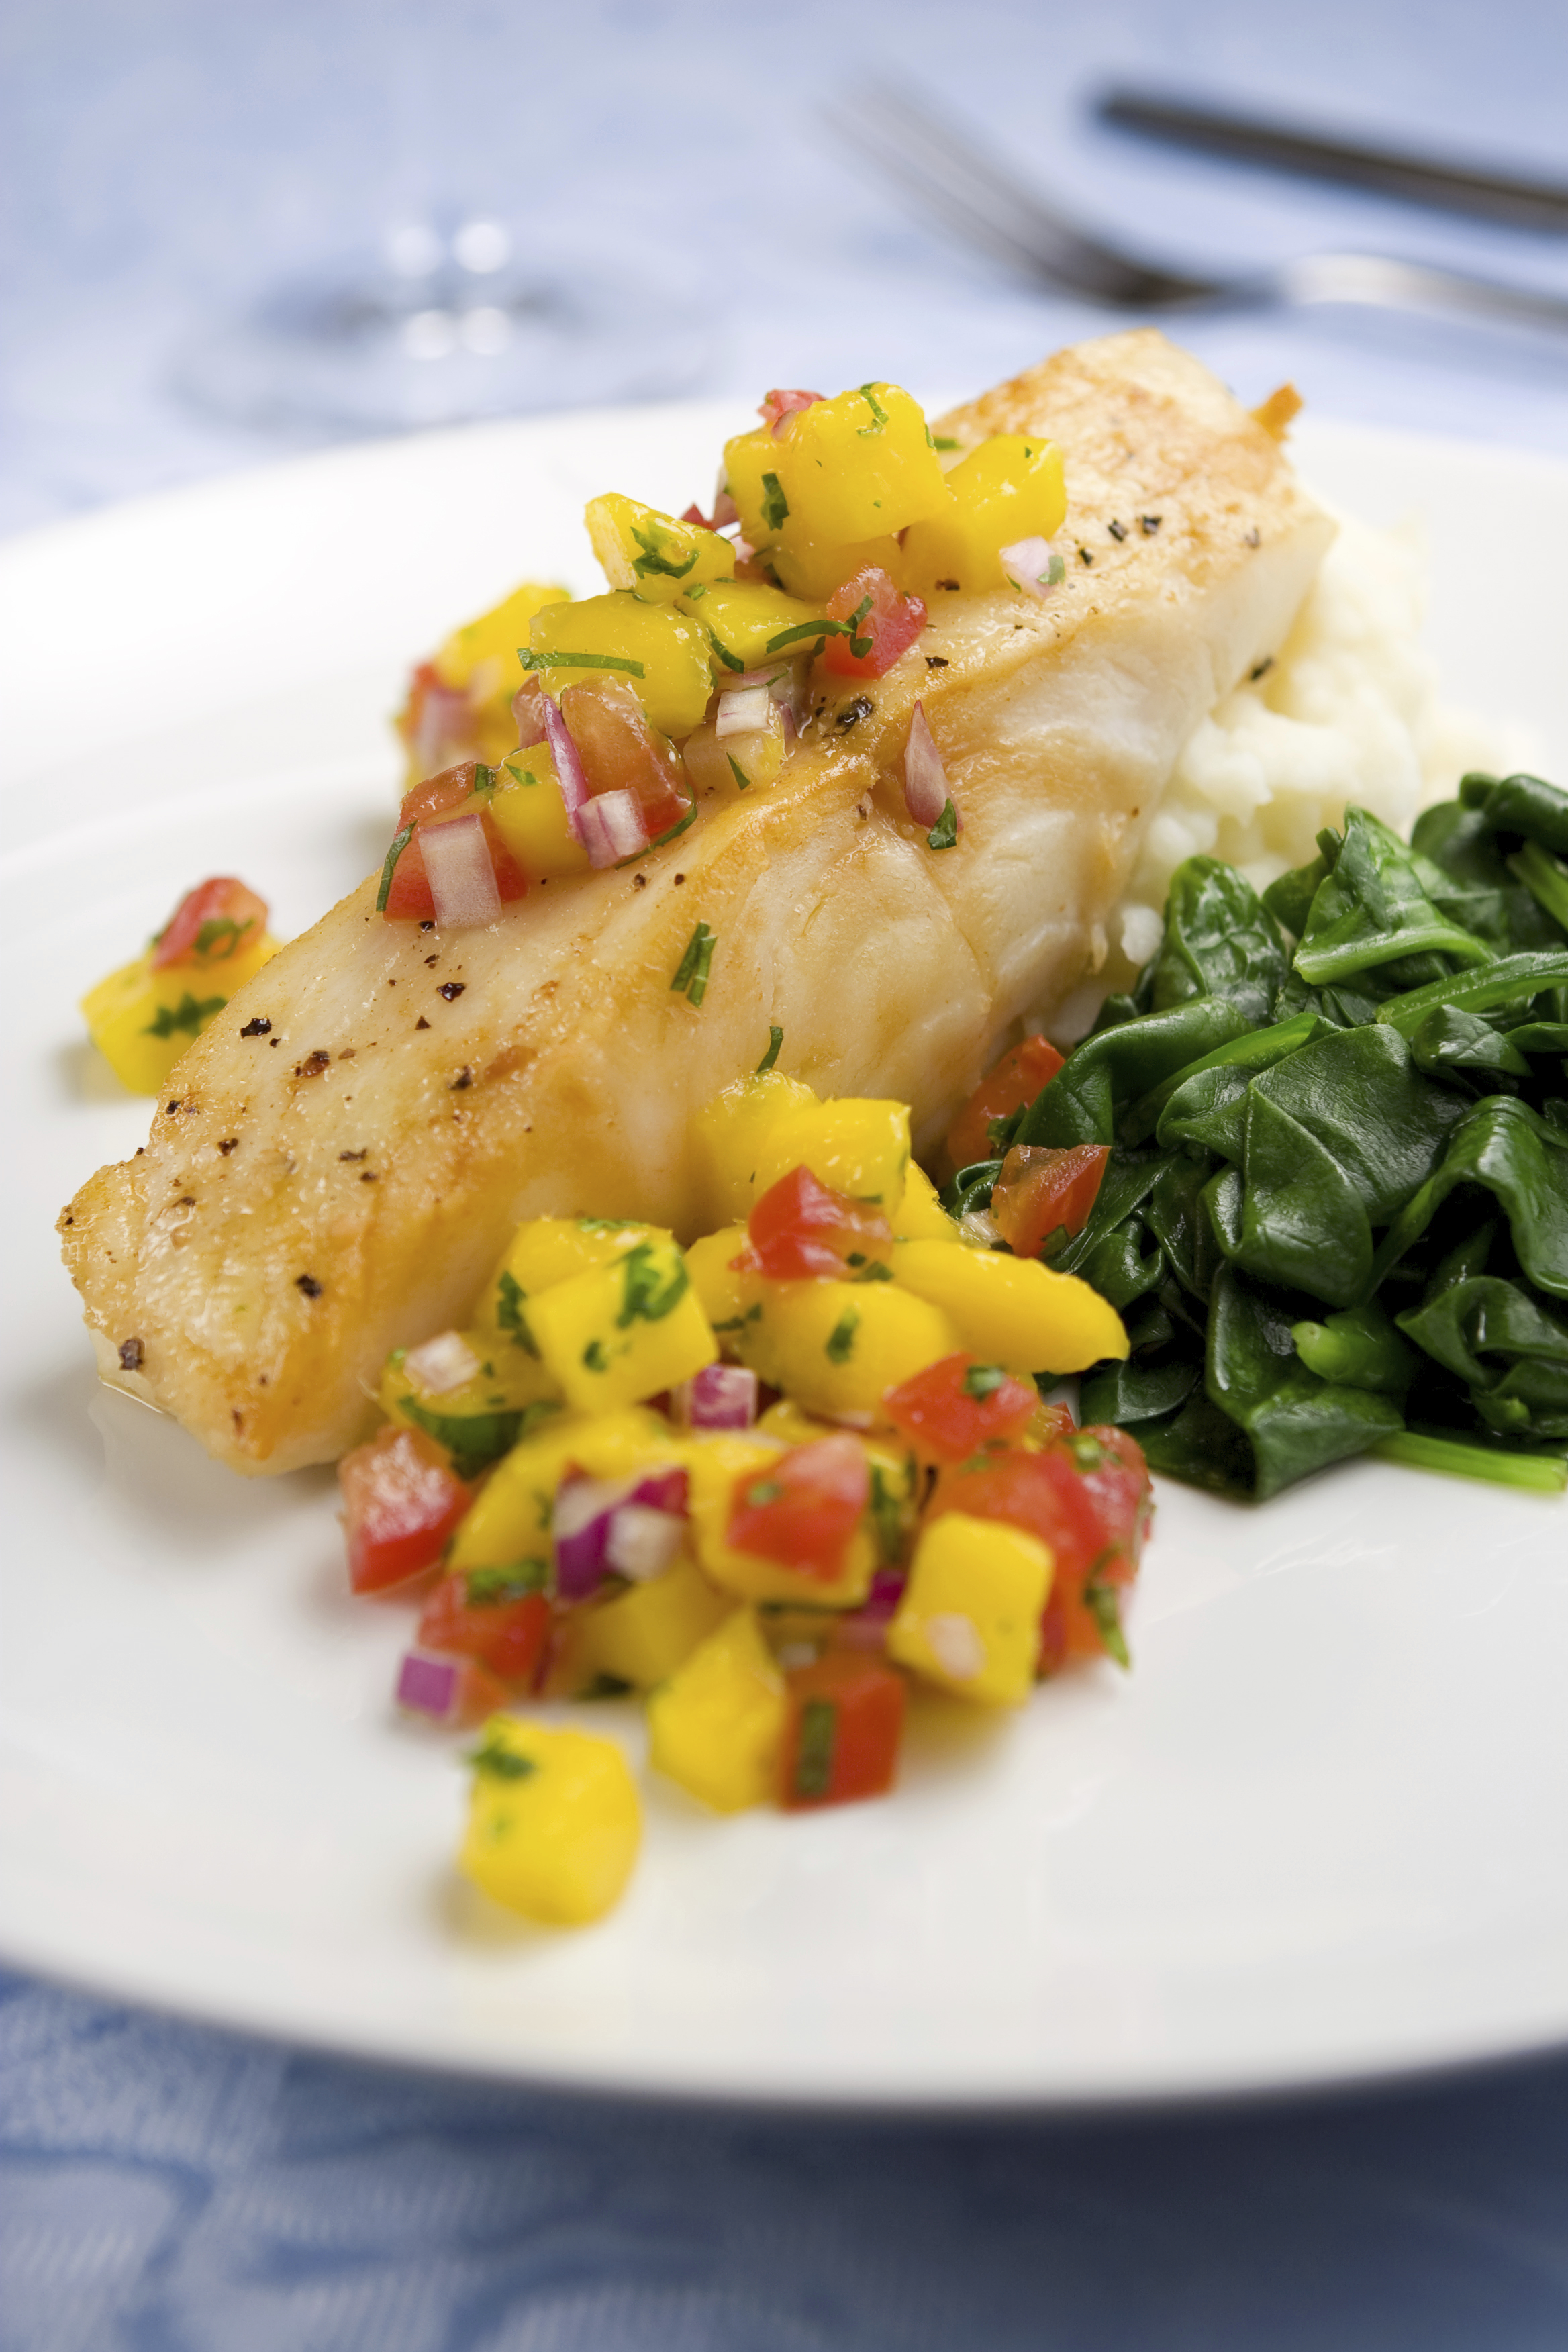 Grilled fish with mango salsa and sauteed spinach.